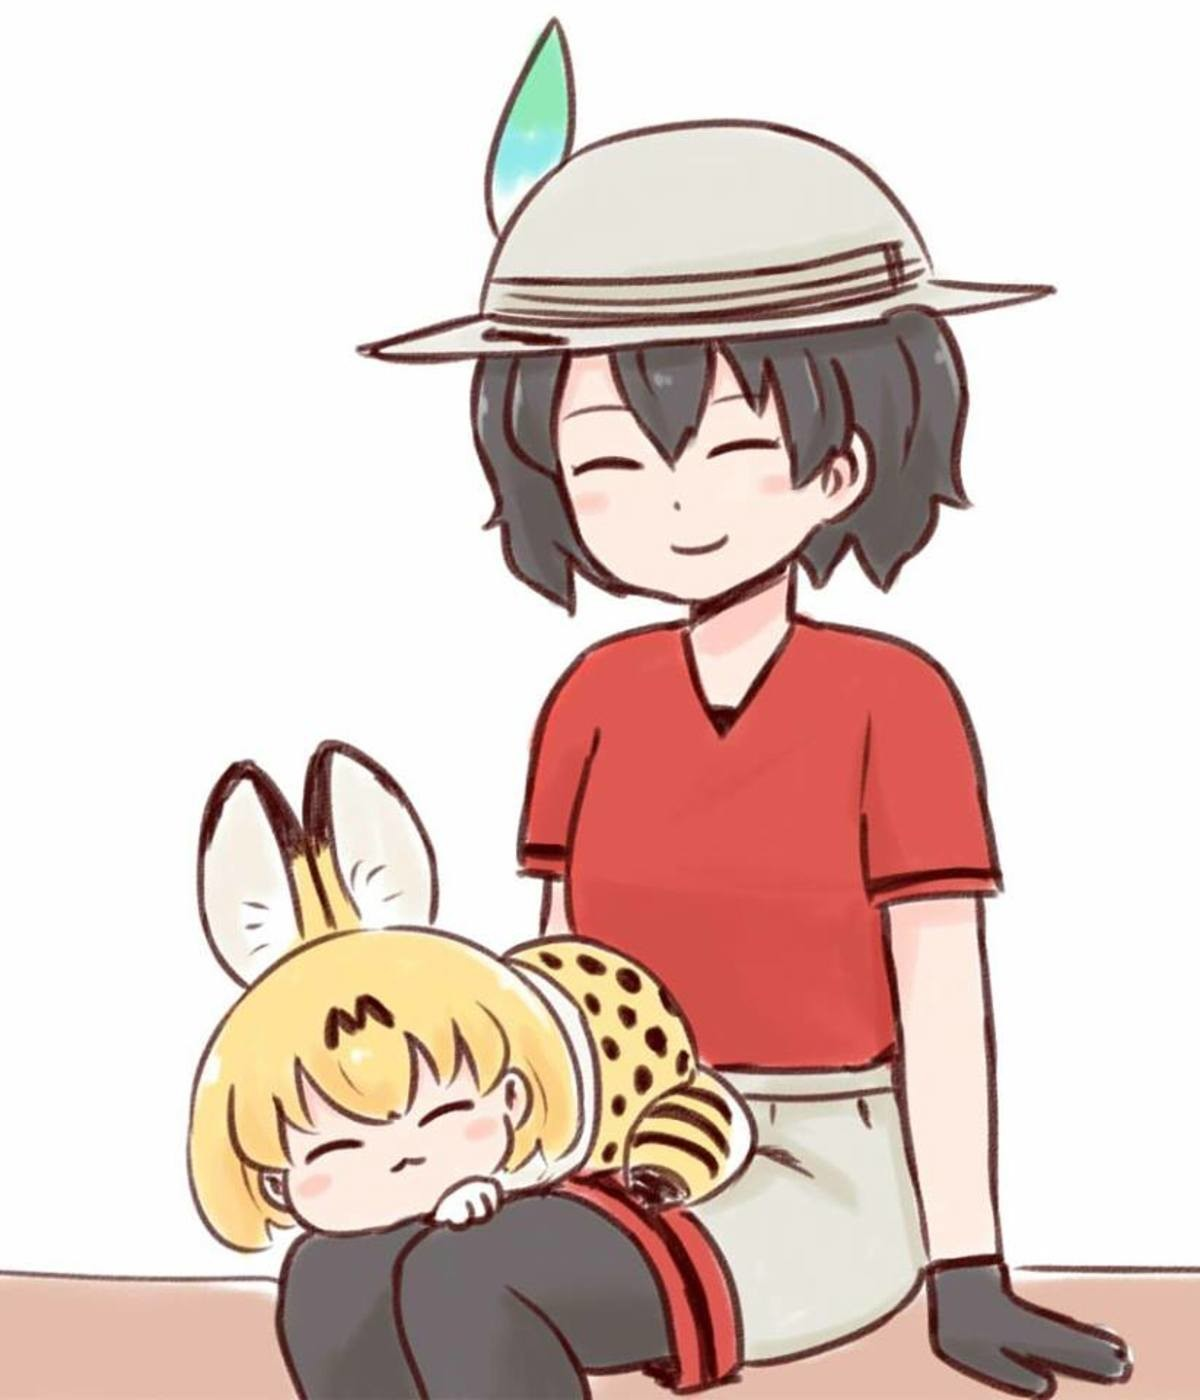 Smol Serval. join list: MonMusuManiacs (1580 subs)Mention History join list: